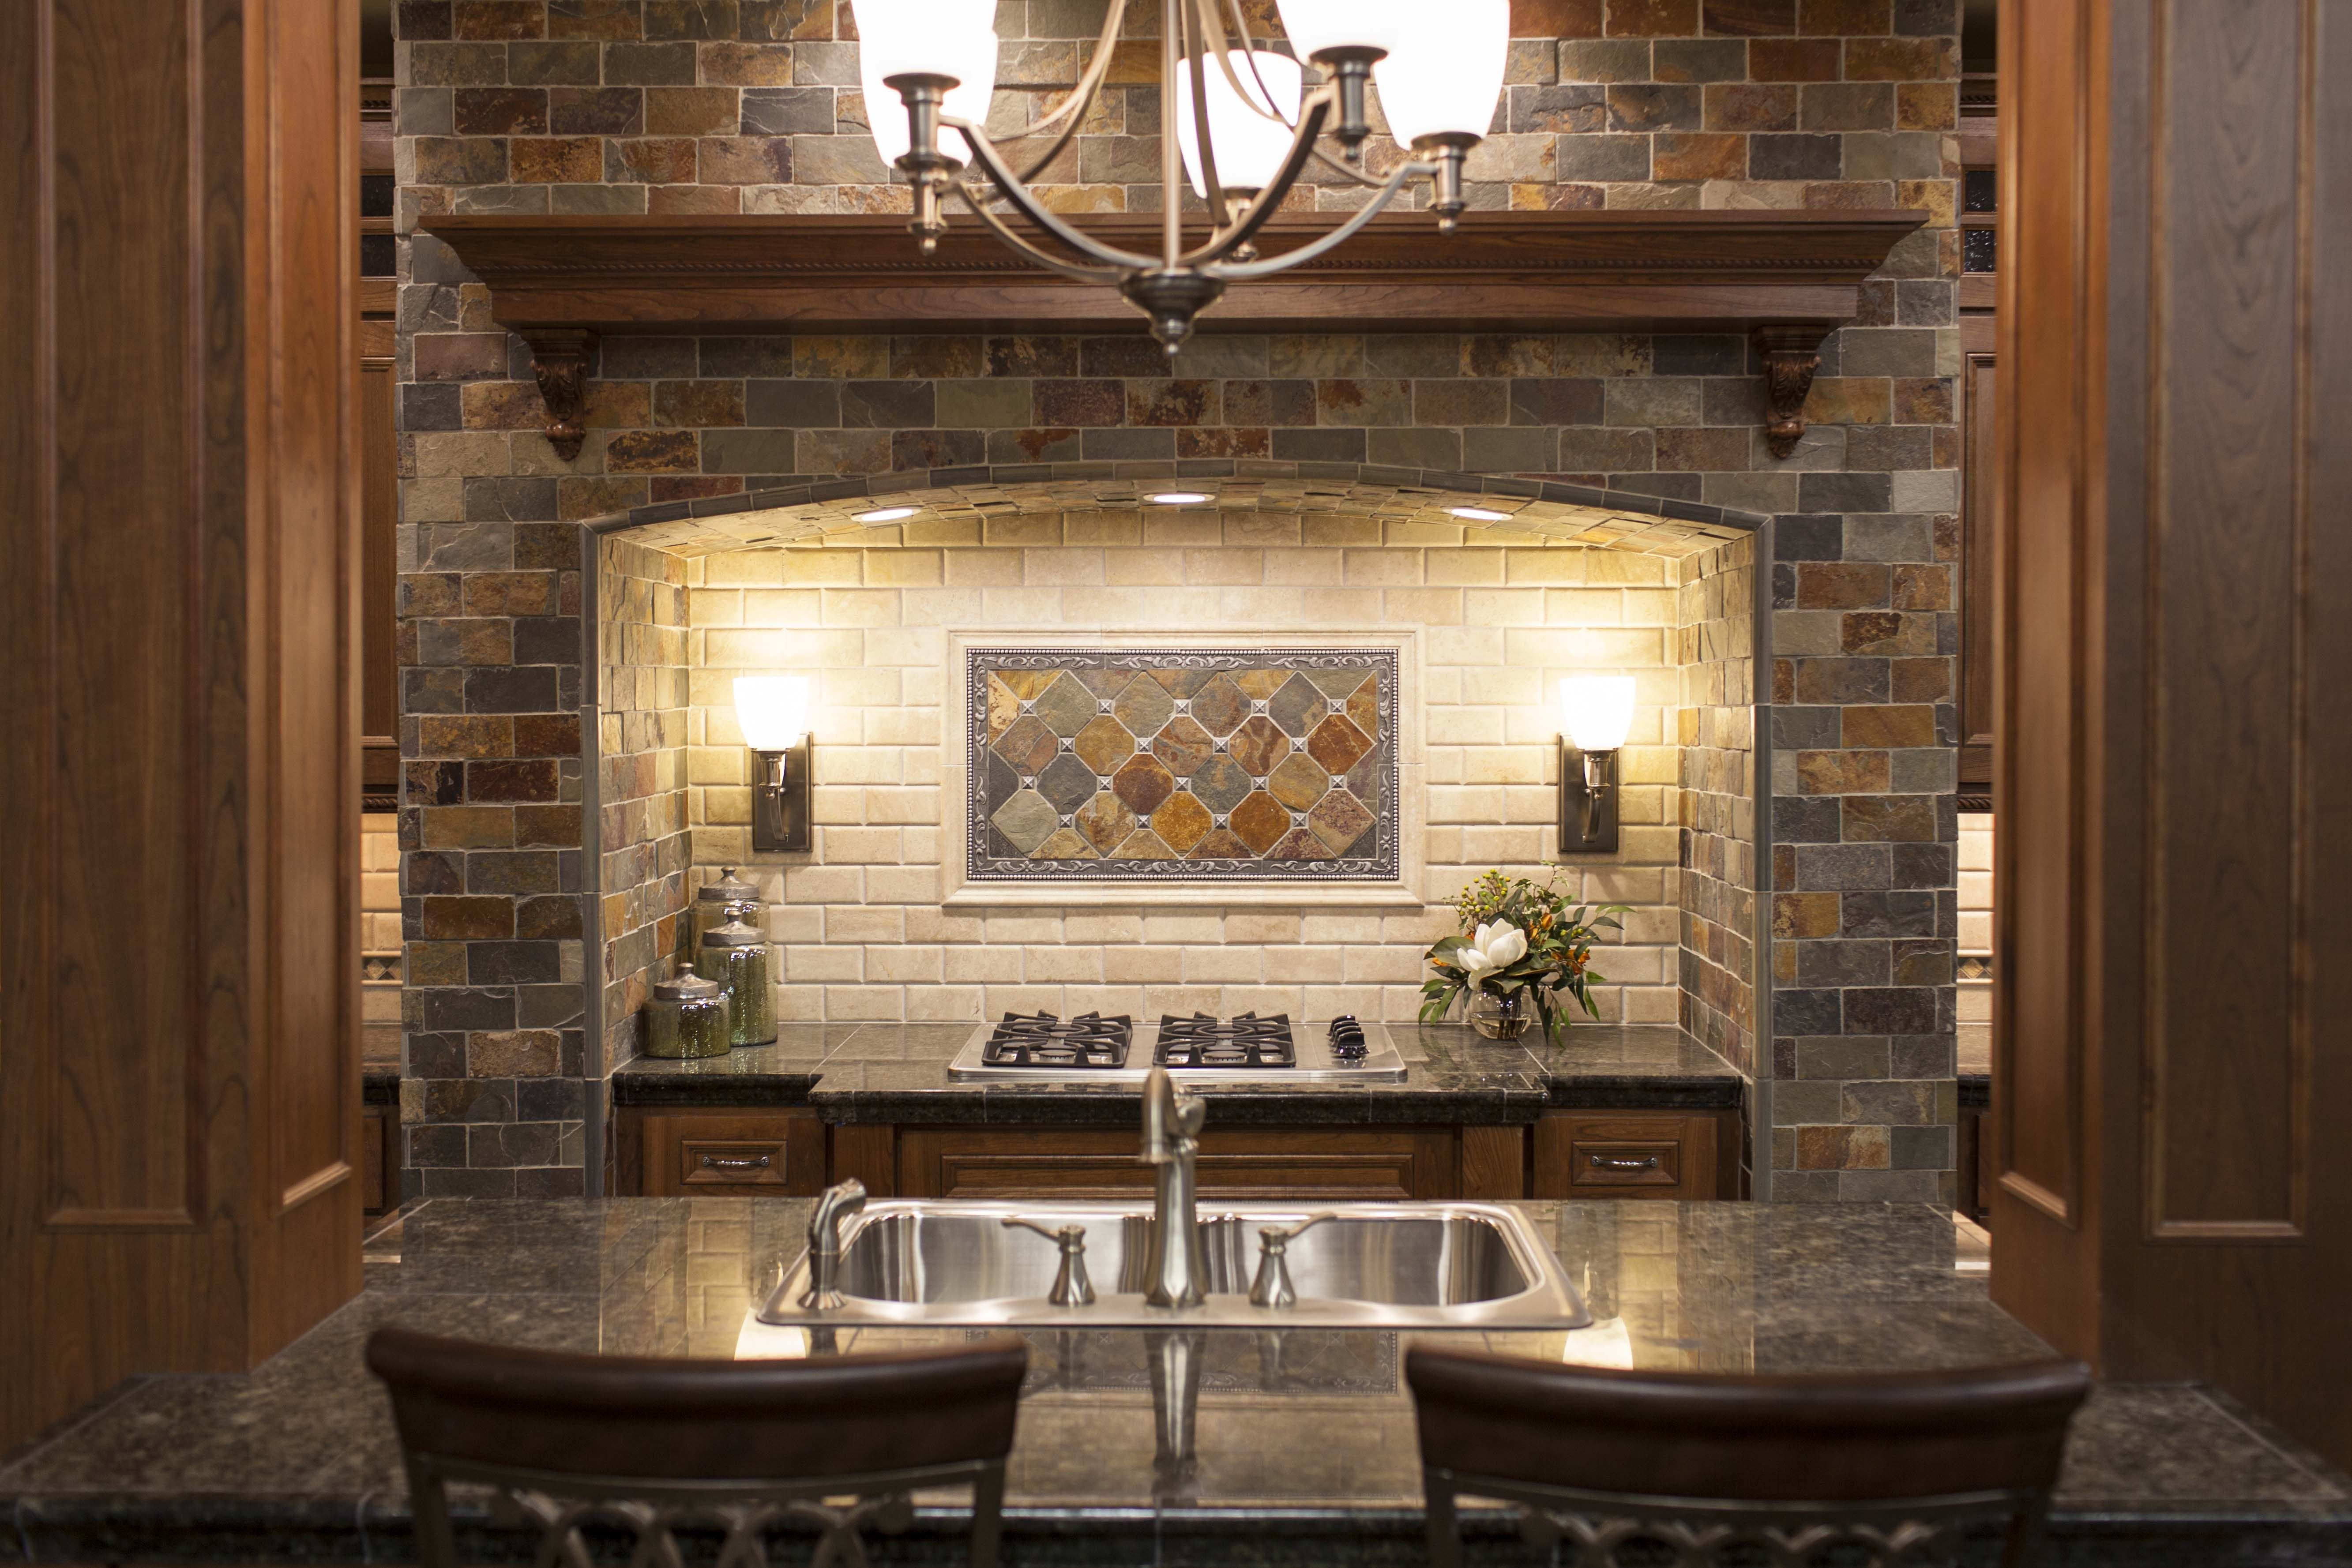 This hearth style backsplash is the focal